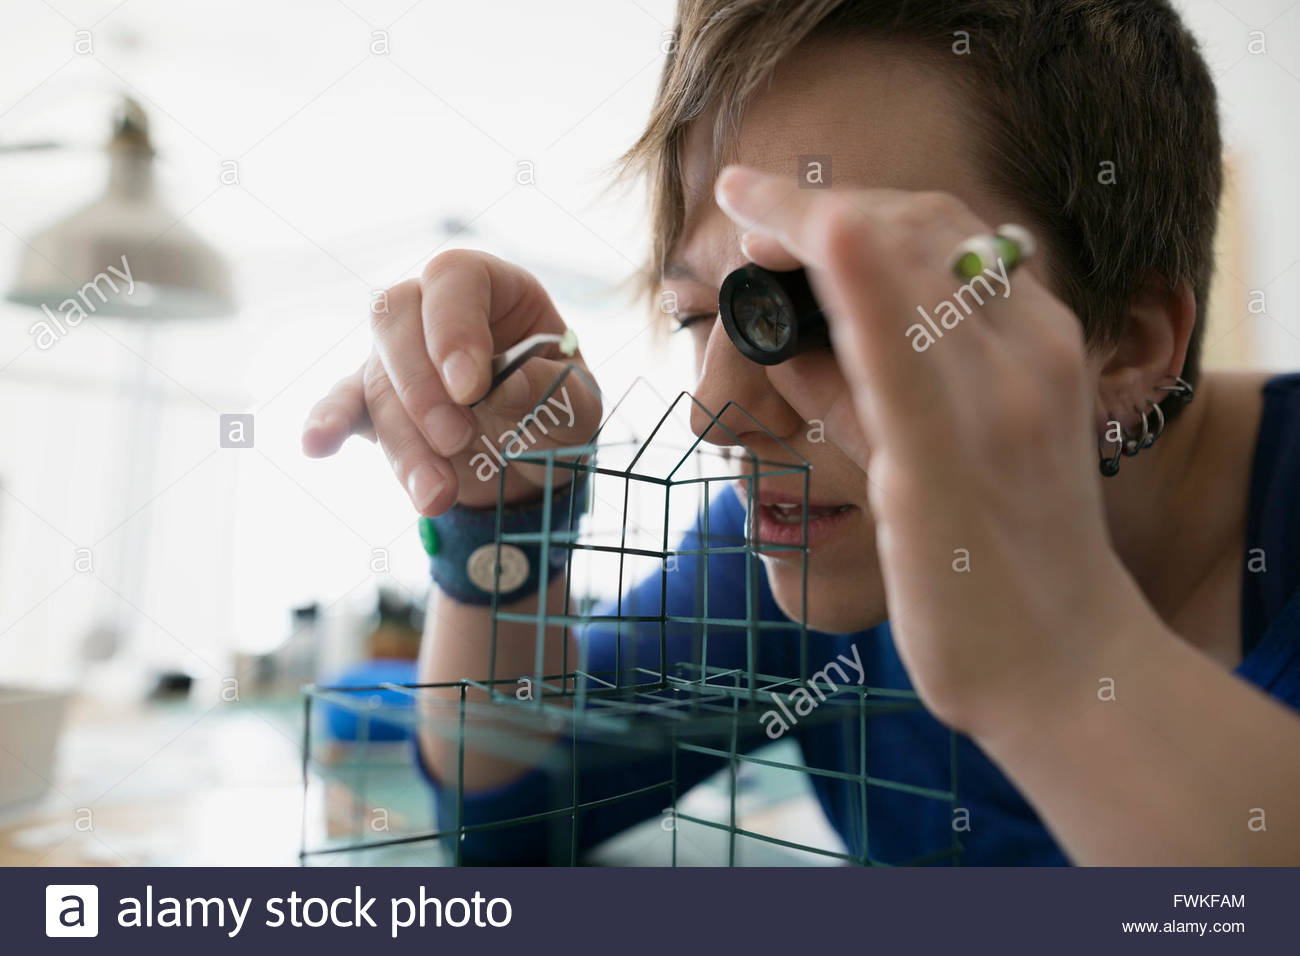 Craftswoman using loupe to assemble wire cage - Stock Image